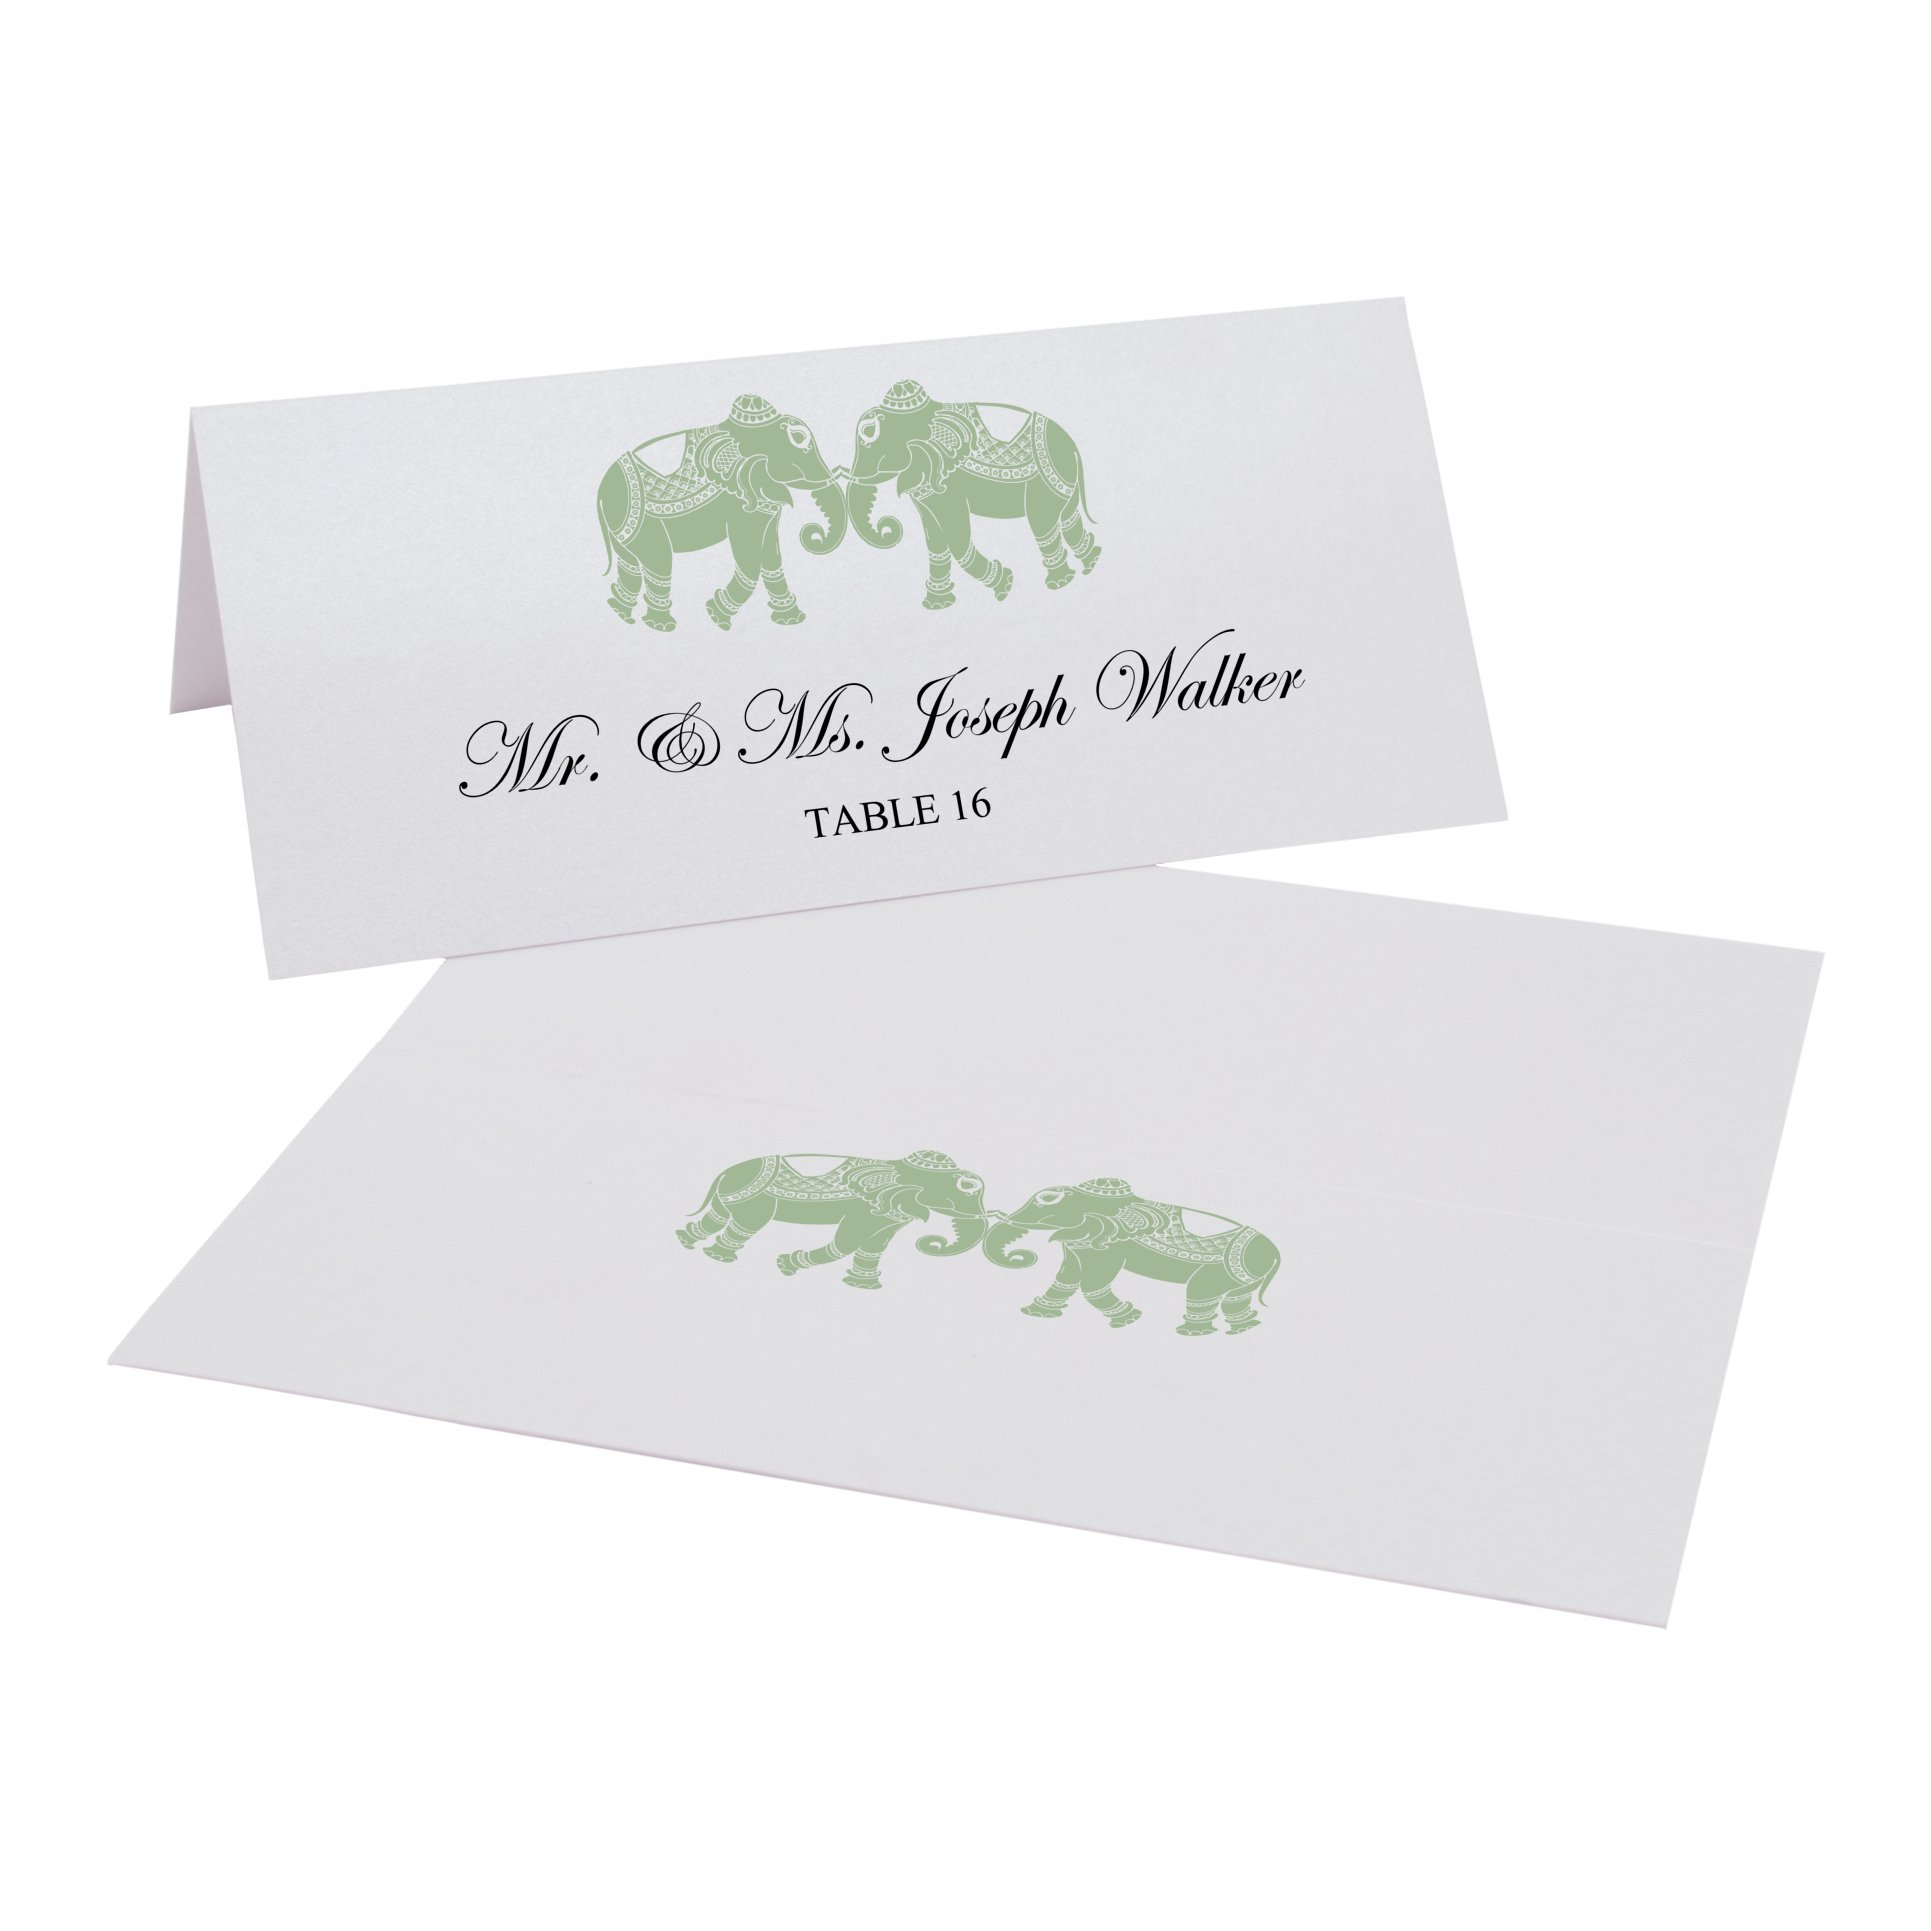 Indian Elephants Easy Print Place Cards, Pearl White, Sage, Set of 425 (107 Sheets) by Documents and Designs